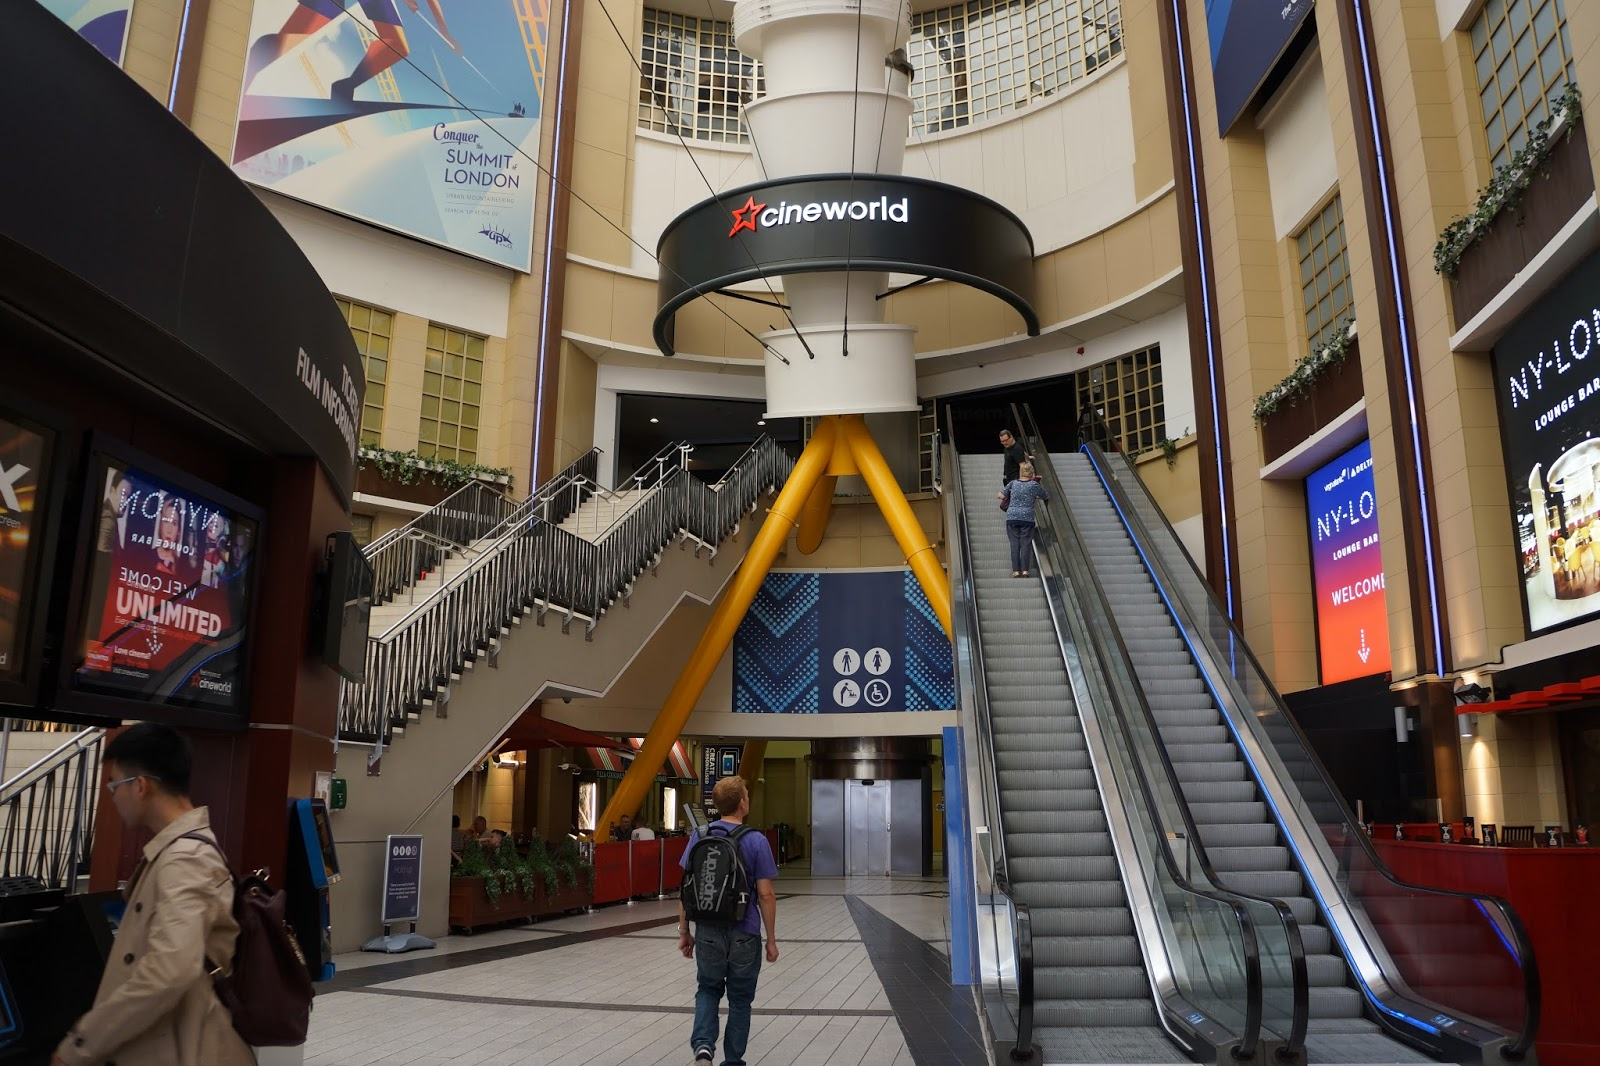 cineworld escalators at the o2